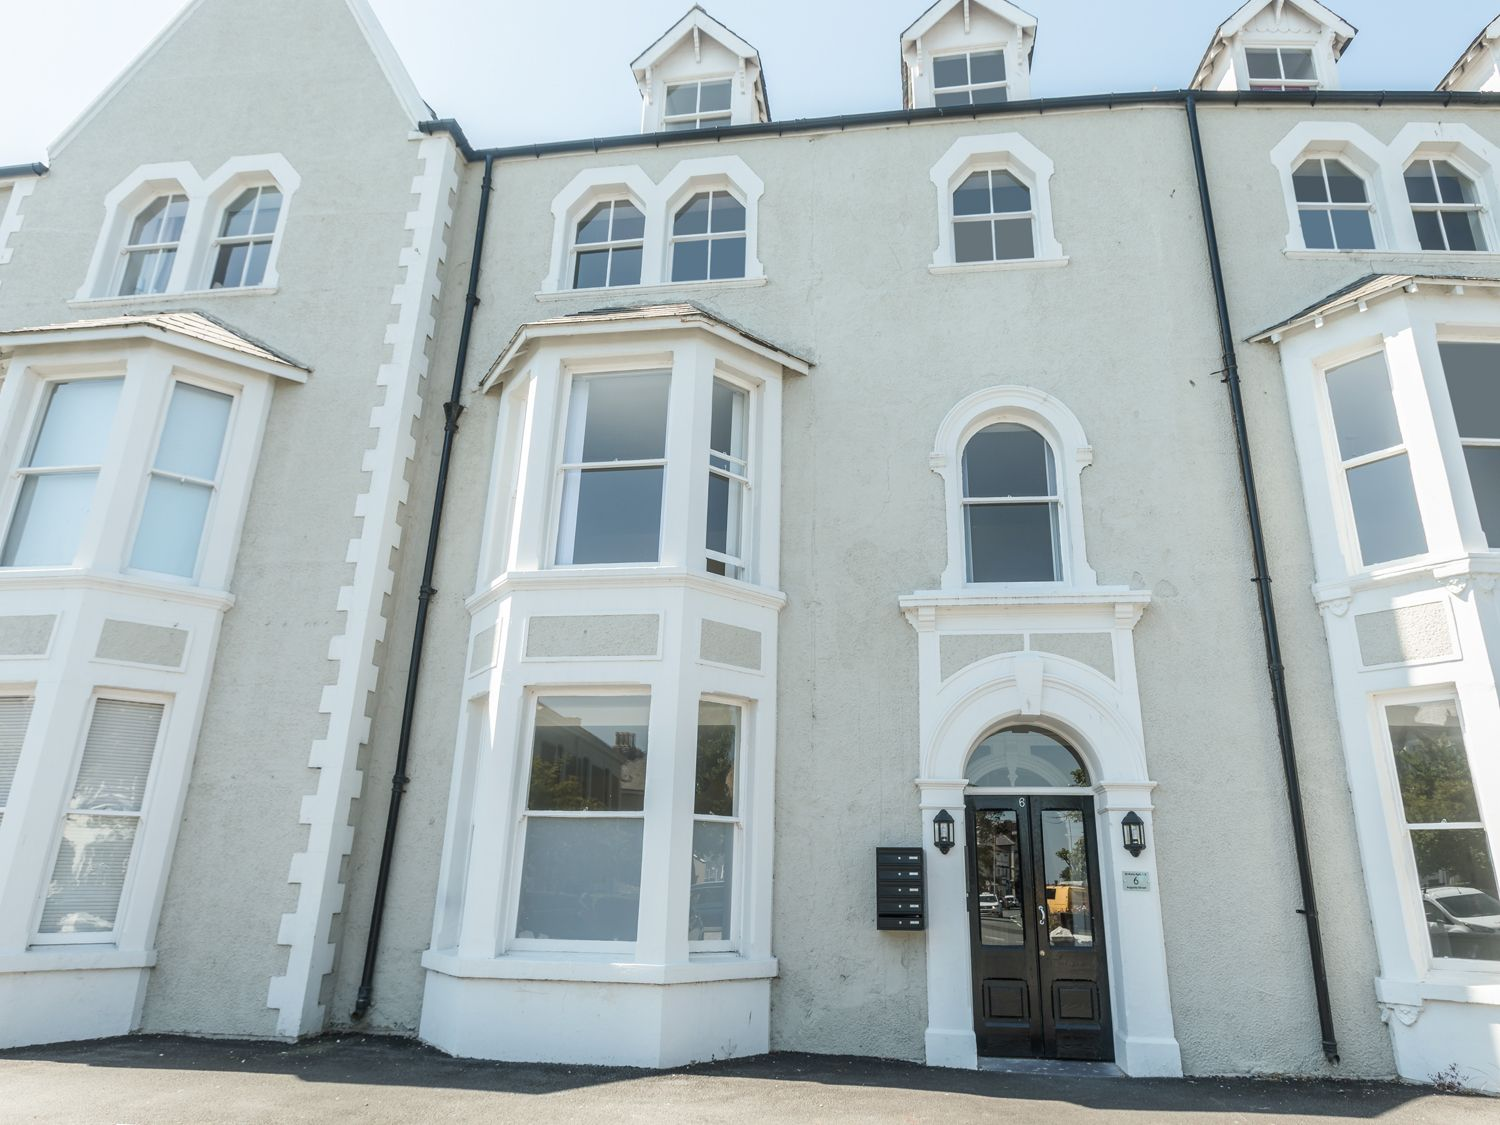 Apartment 3, 6 St Anns Apartments - North Wales - 984971 - photo 1